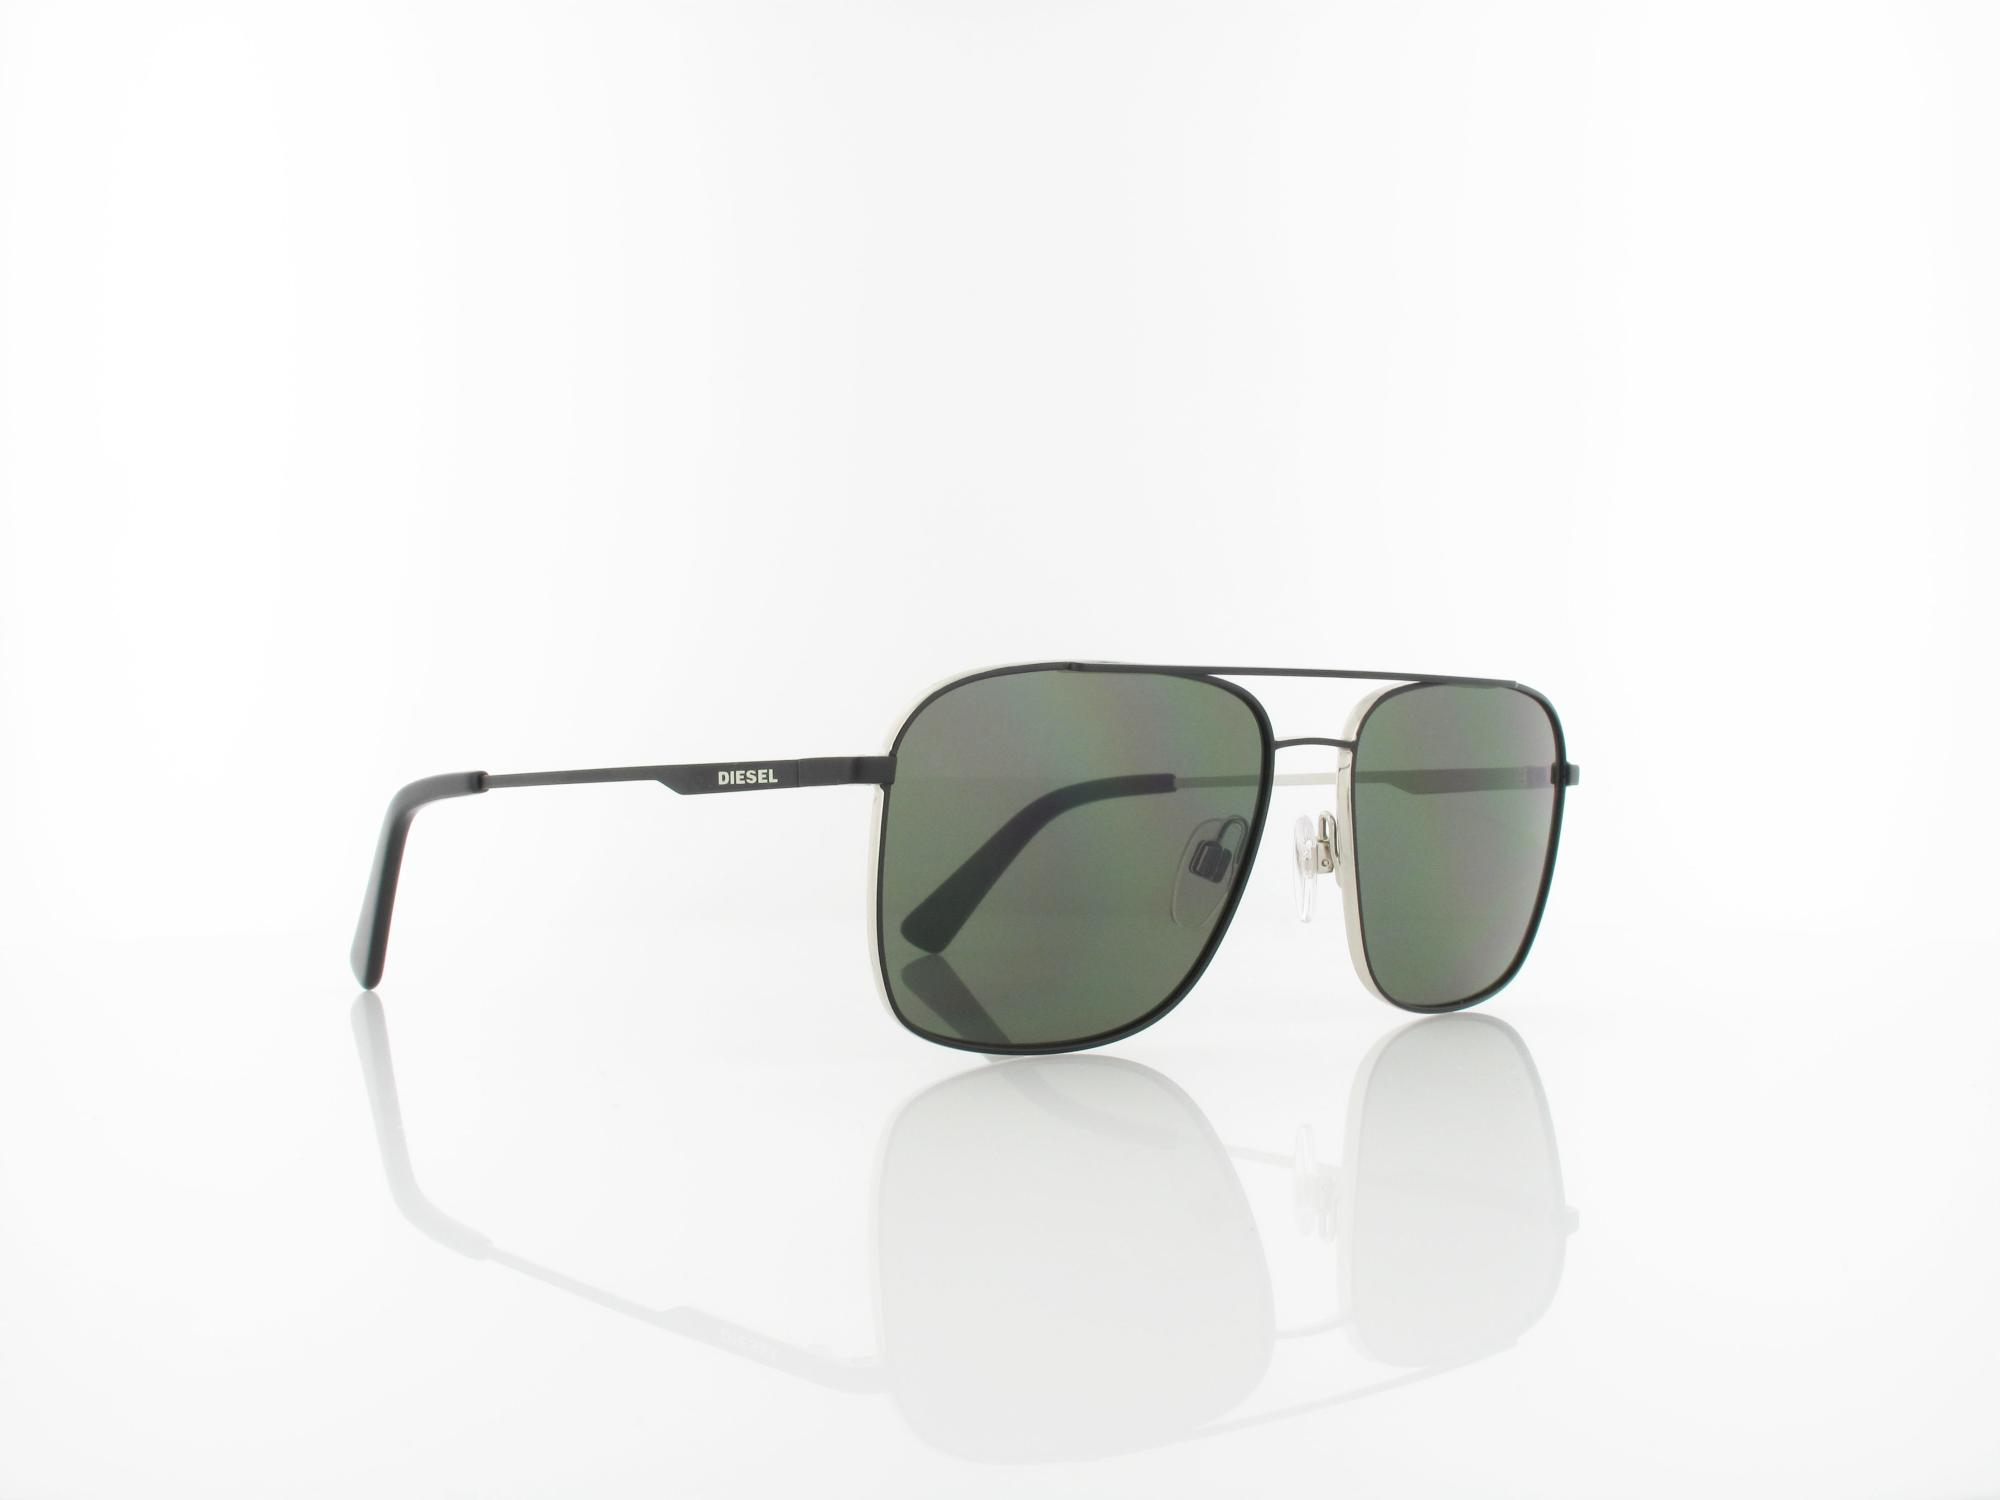 Diesel | DL0295/S 05N 55 | black / green